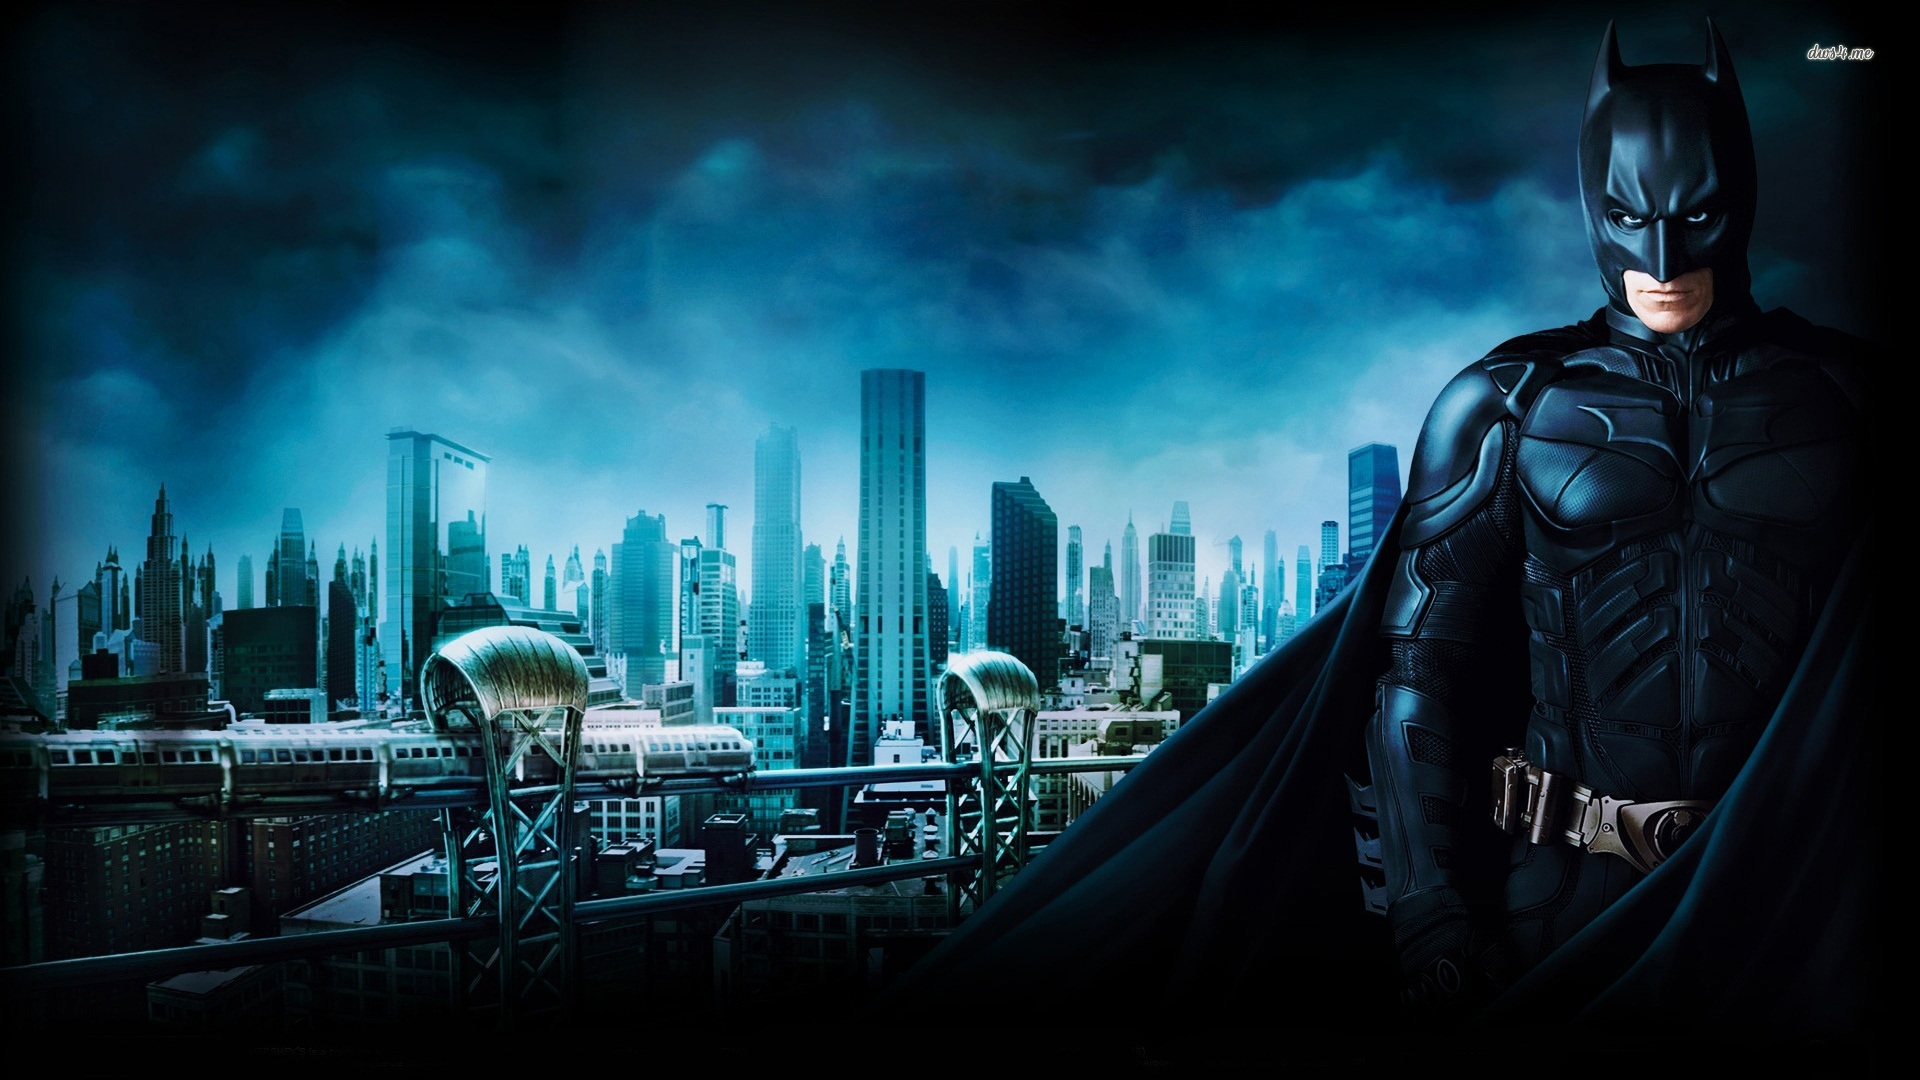 Batman The Dark Knight Wallpapers and Background Images   stmednet 1920x1080